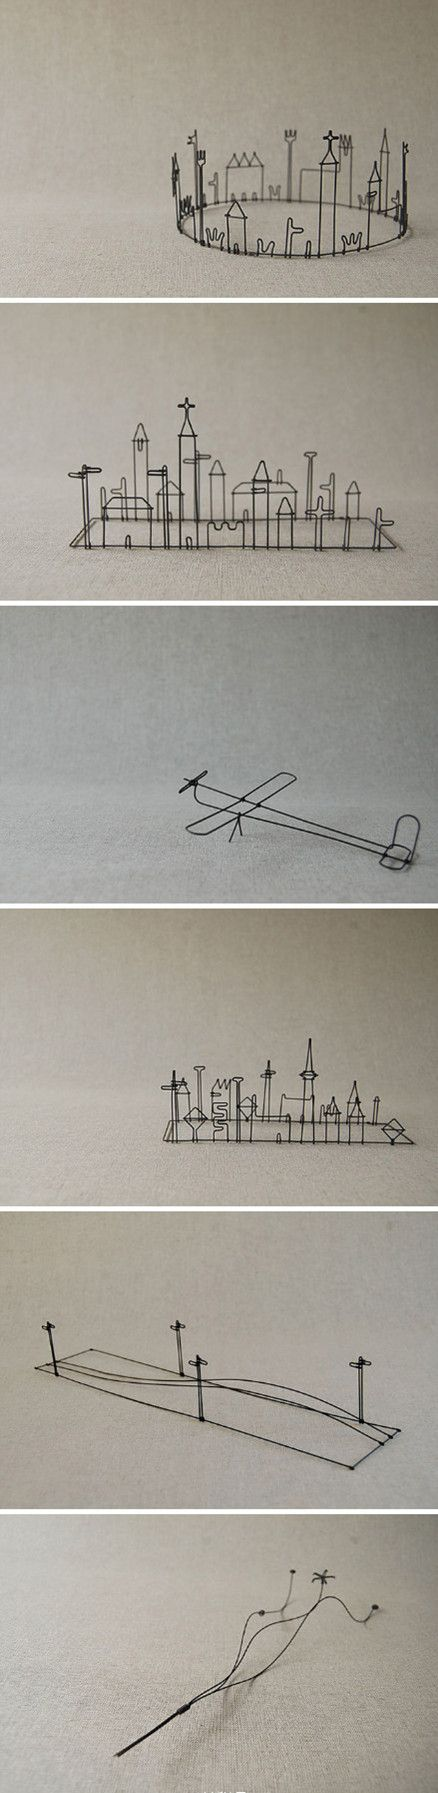 Something to do with a 3Doodler-pen? These wire art pieces are so simple and so expressive.